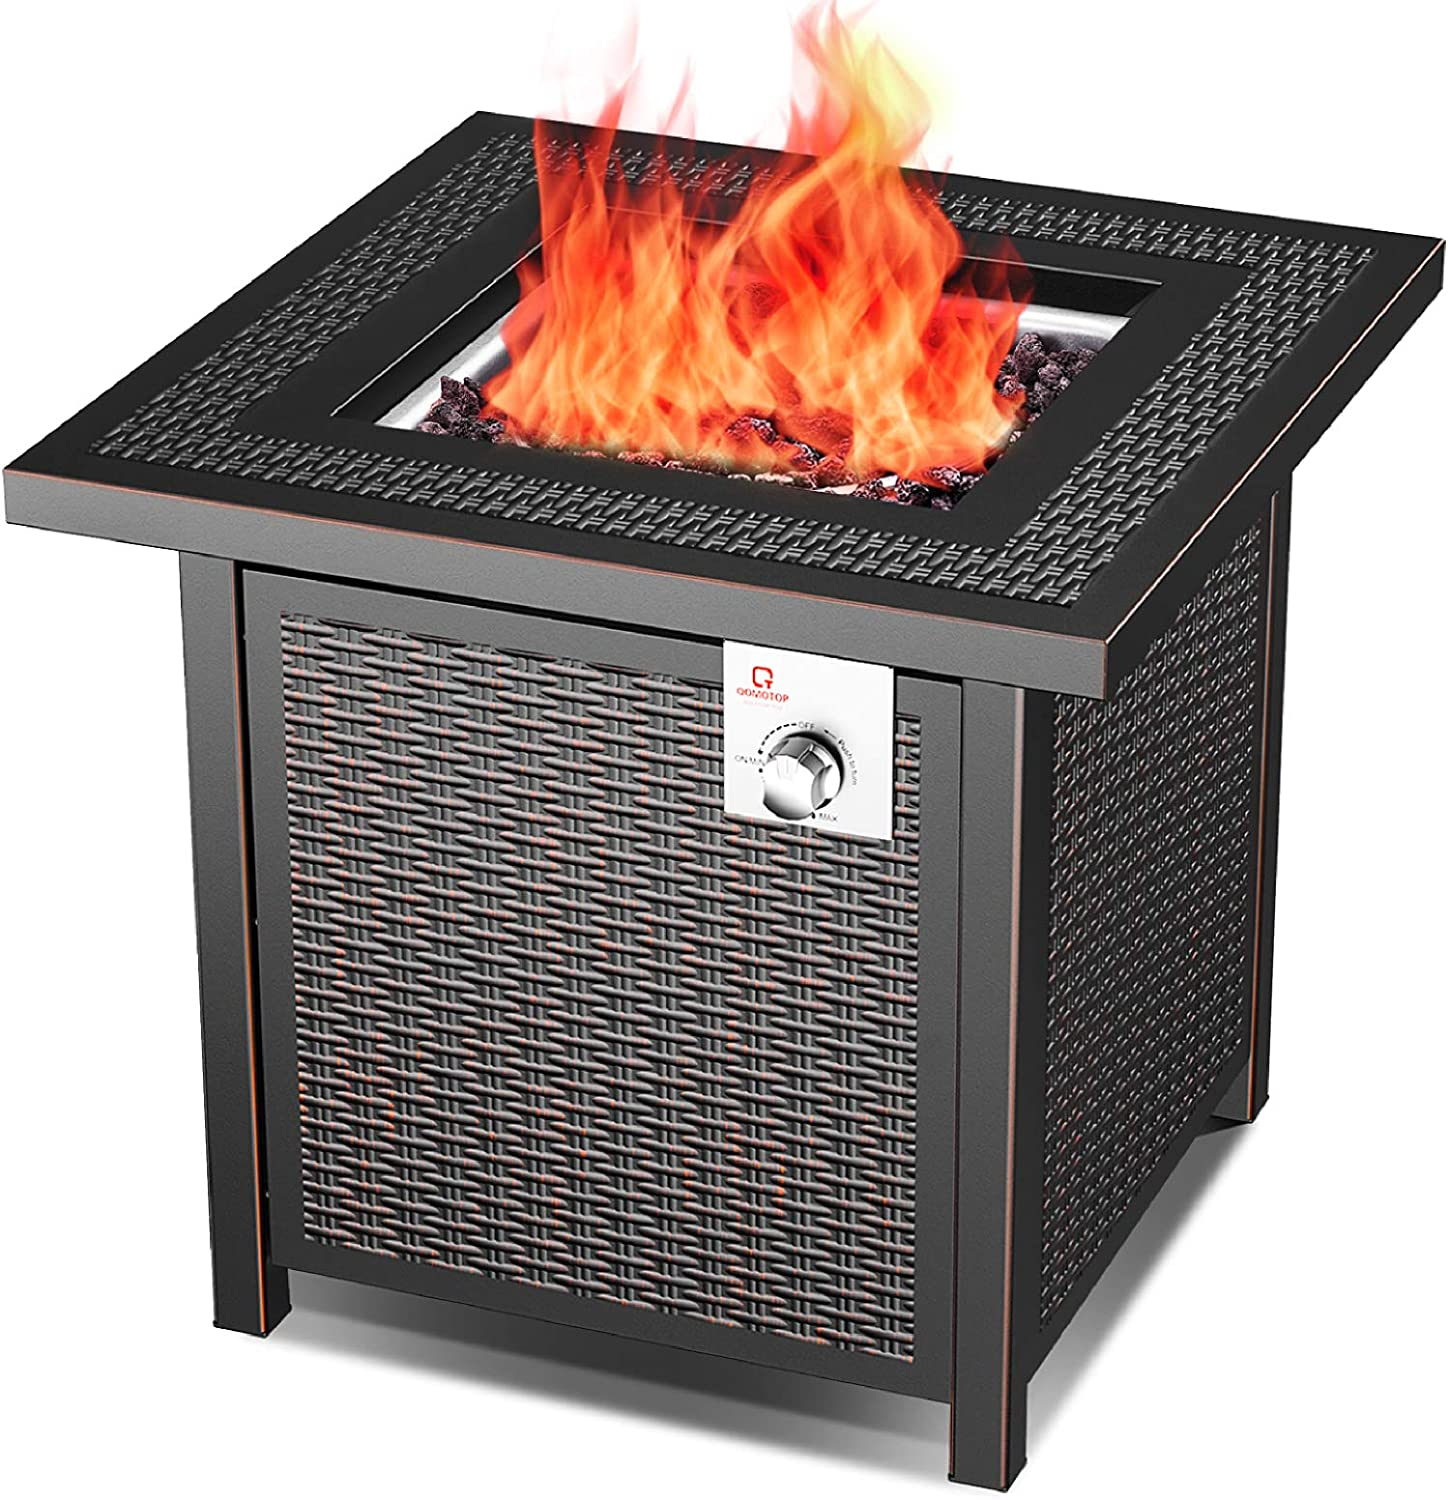 Ot Qomotop Outdoor Propane Fire Pit Table 28 Inch 50 000 Btu Gas Fire Table With Auto Ignition And Csa Certification Approval Suitable For Stone Marble Wooden Floor And Grassland Amazon Co Uk Garden Outdoors